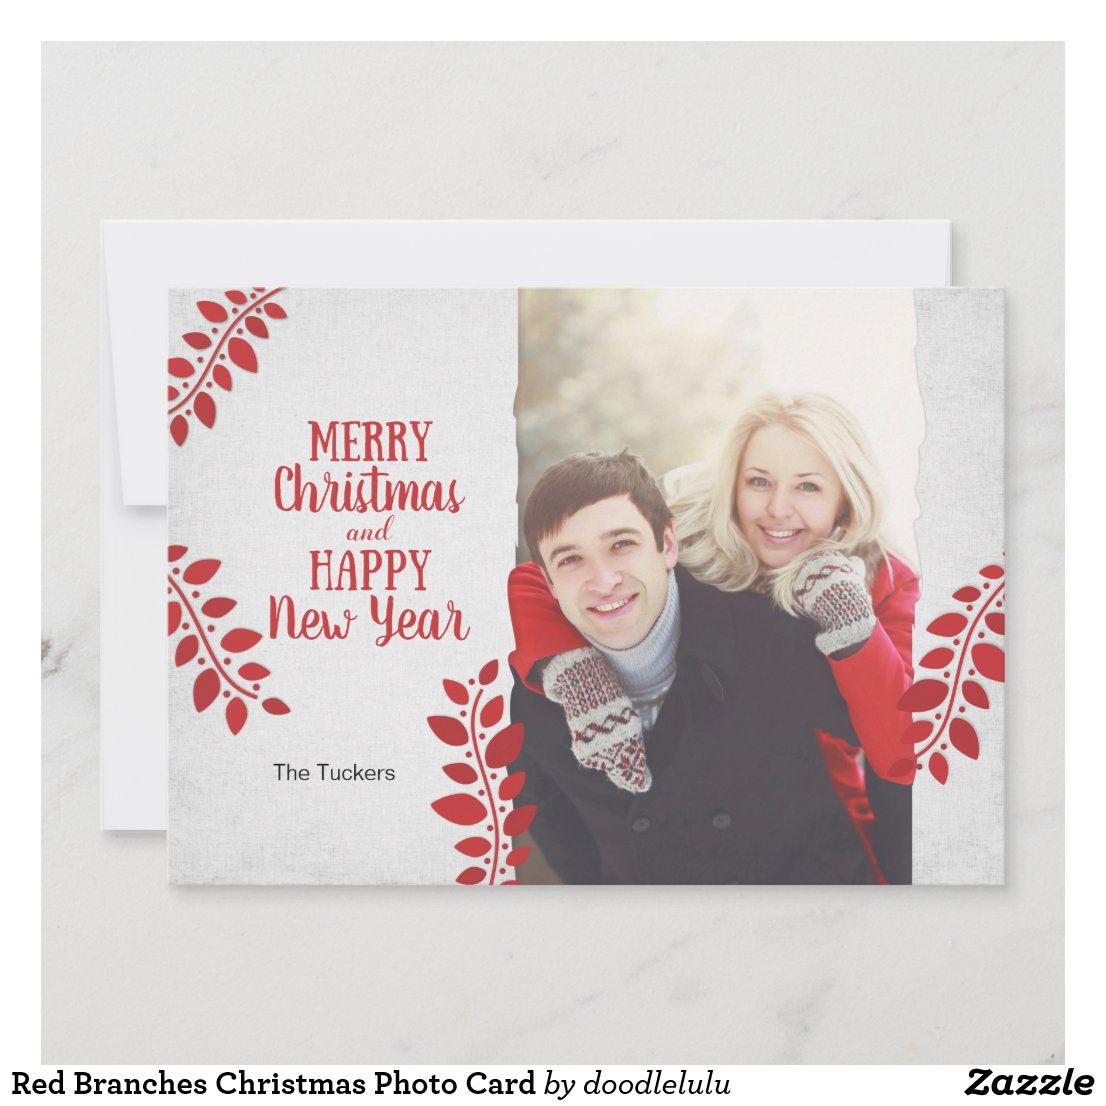 Red Branches Christmas Photo Card